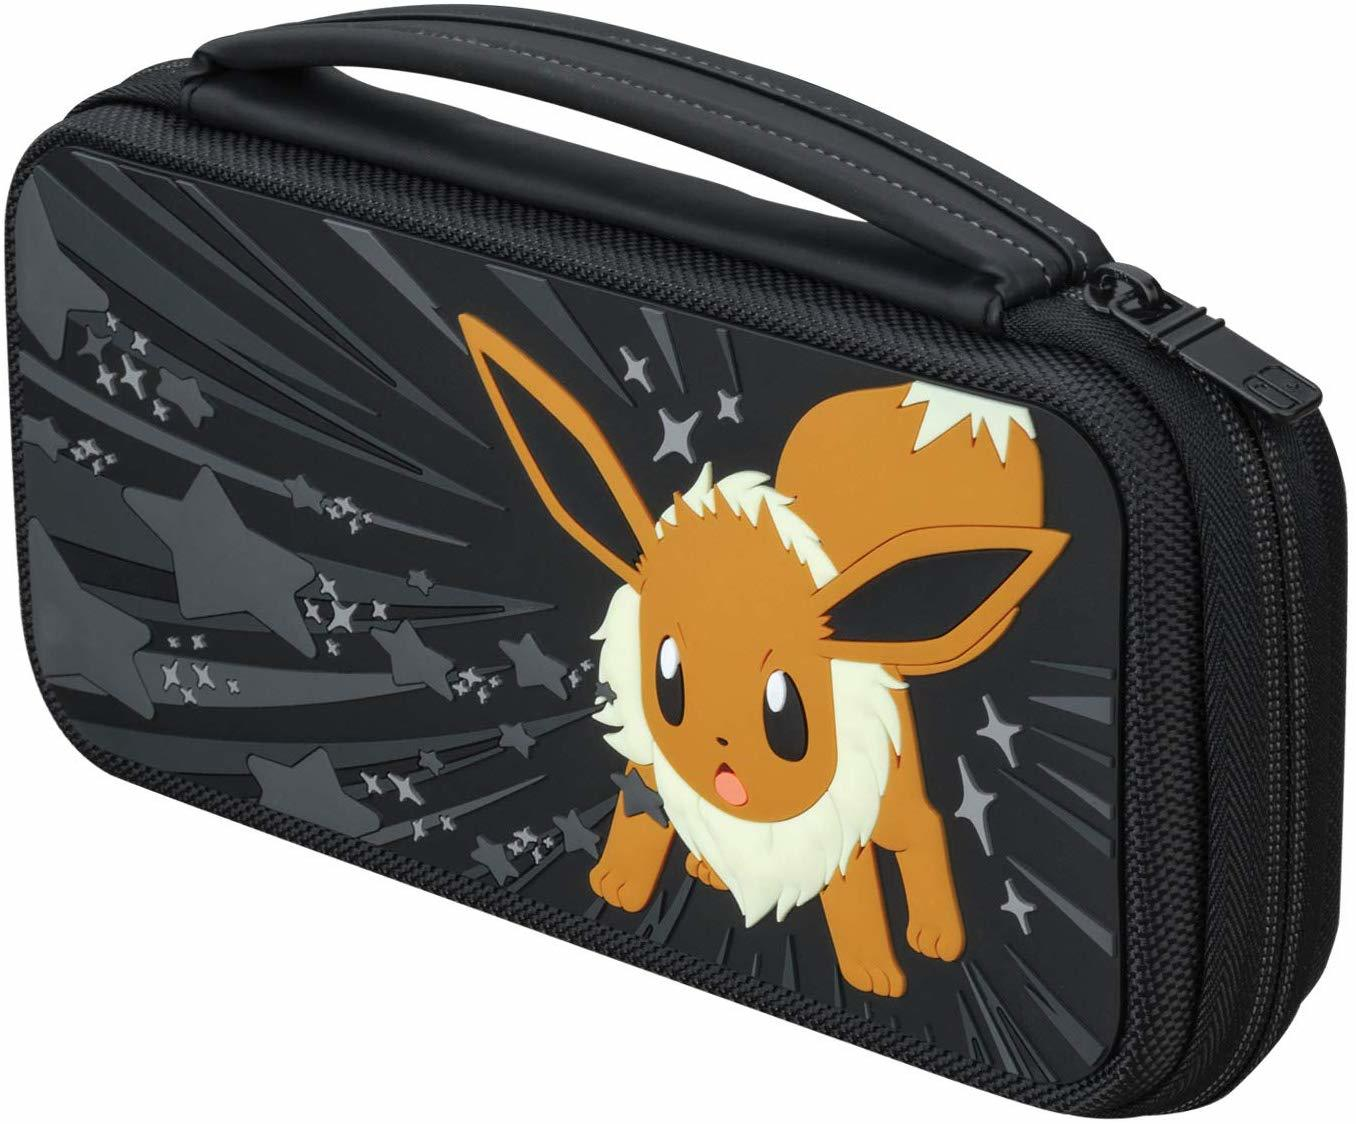 PDP Switch Travel Case - Eevee Greyscale - Nintendo Switch